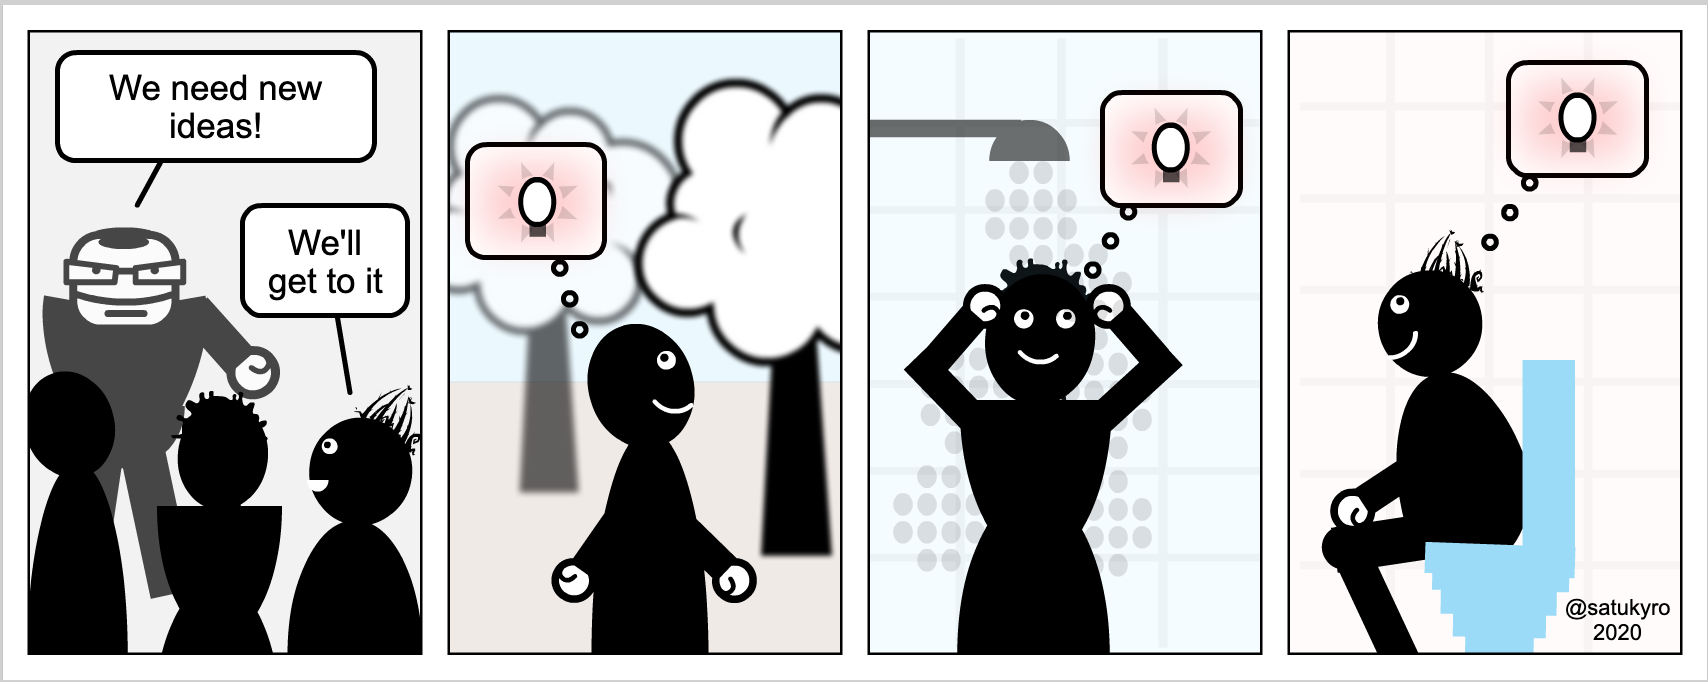 Cartoon about generating ideas